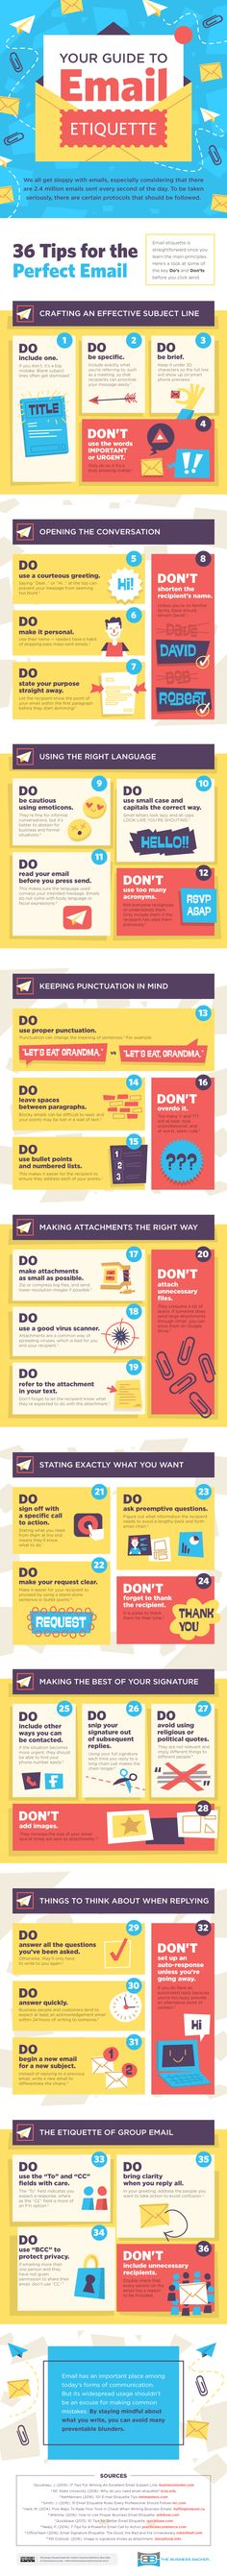 Email Etiquette: 36 Dos and Don'ts for Communicating via Email #Infographic #EmailMarketing